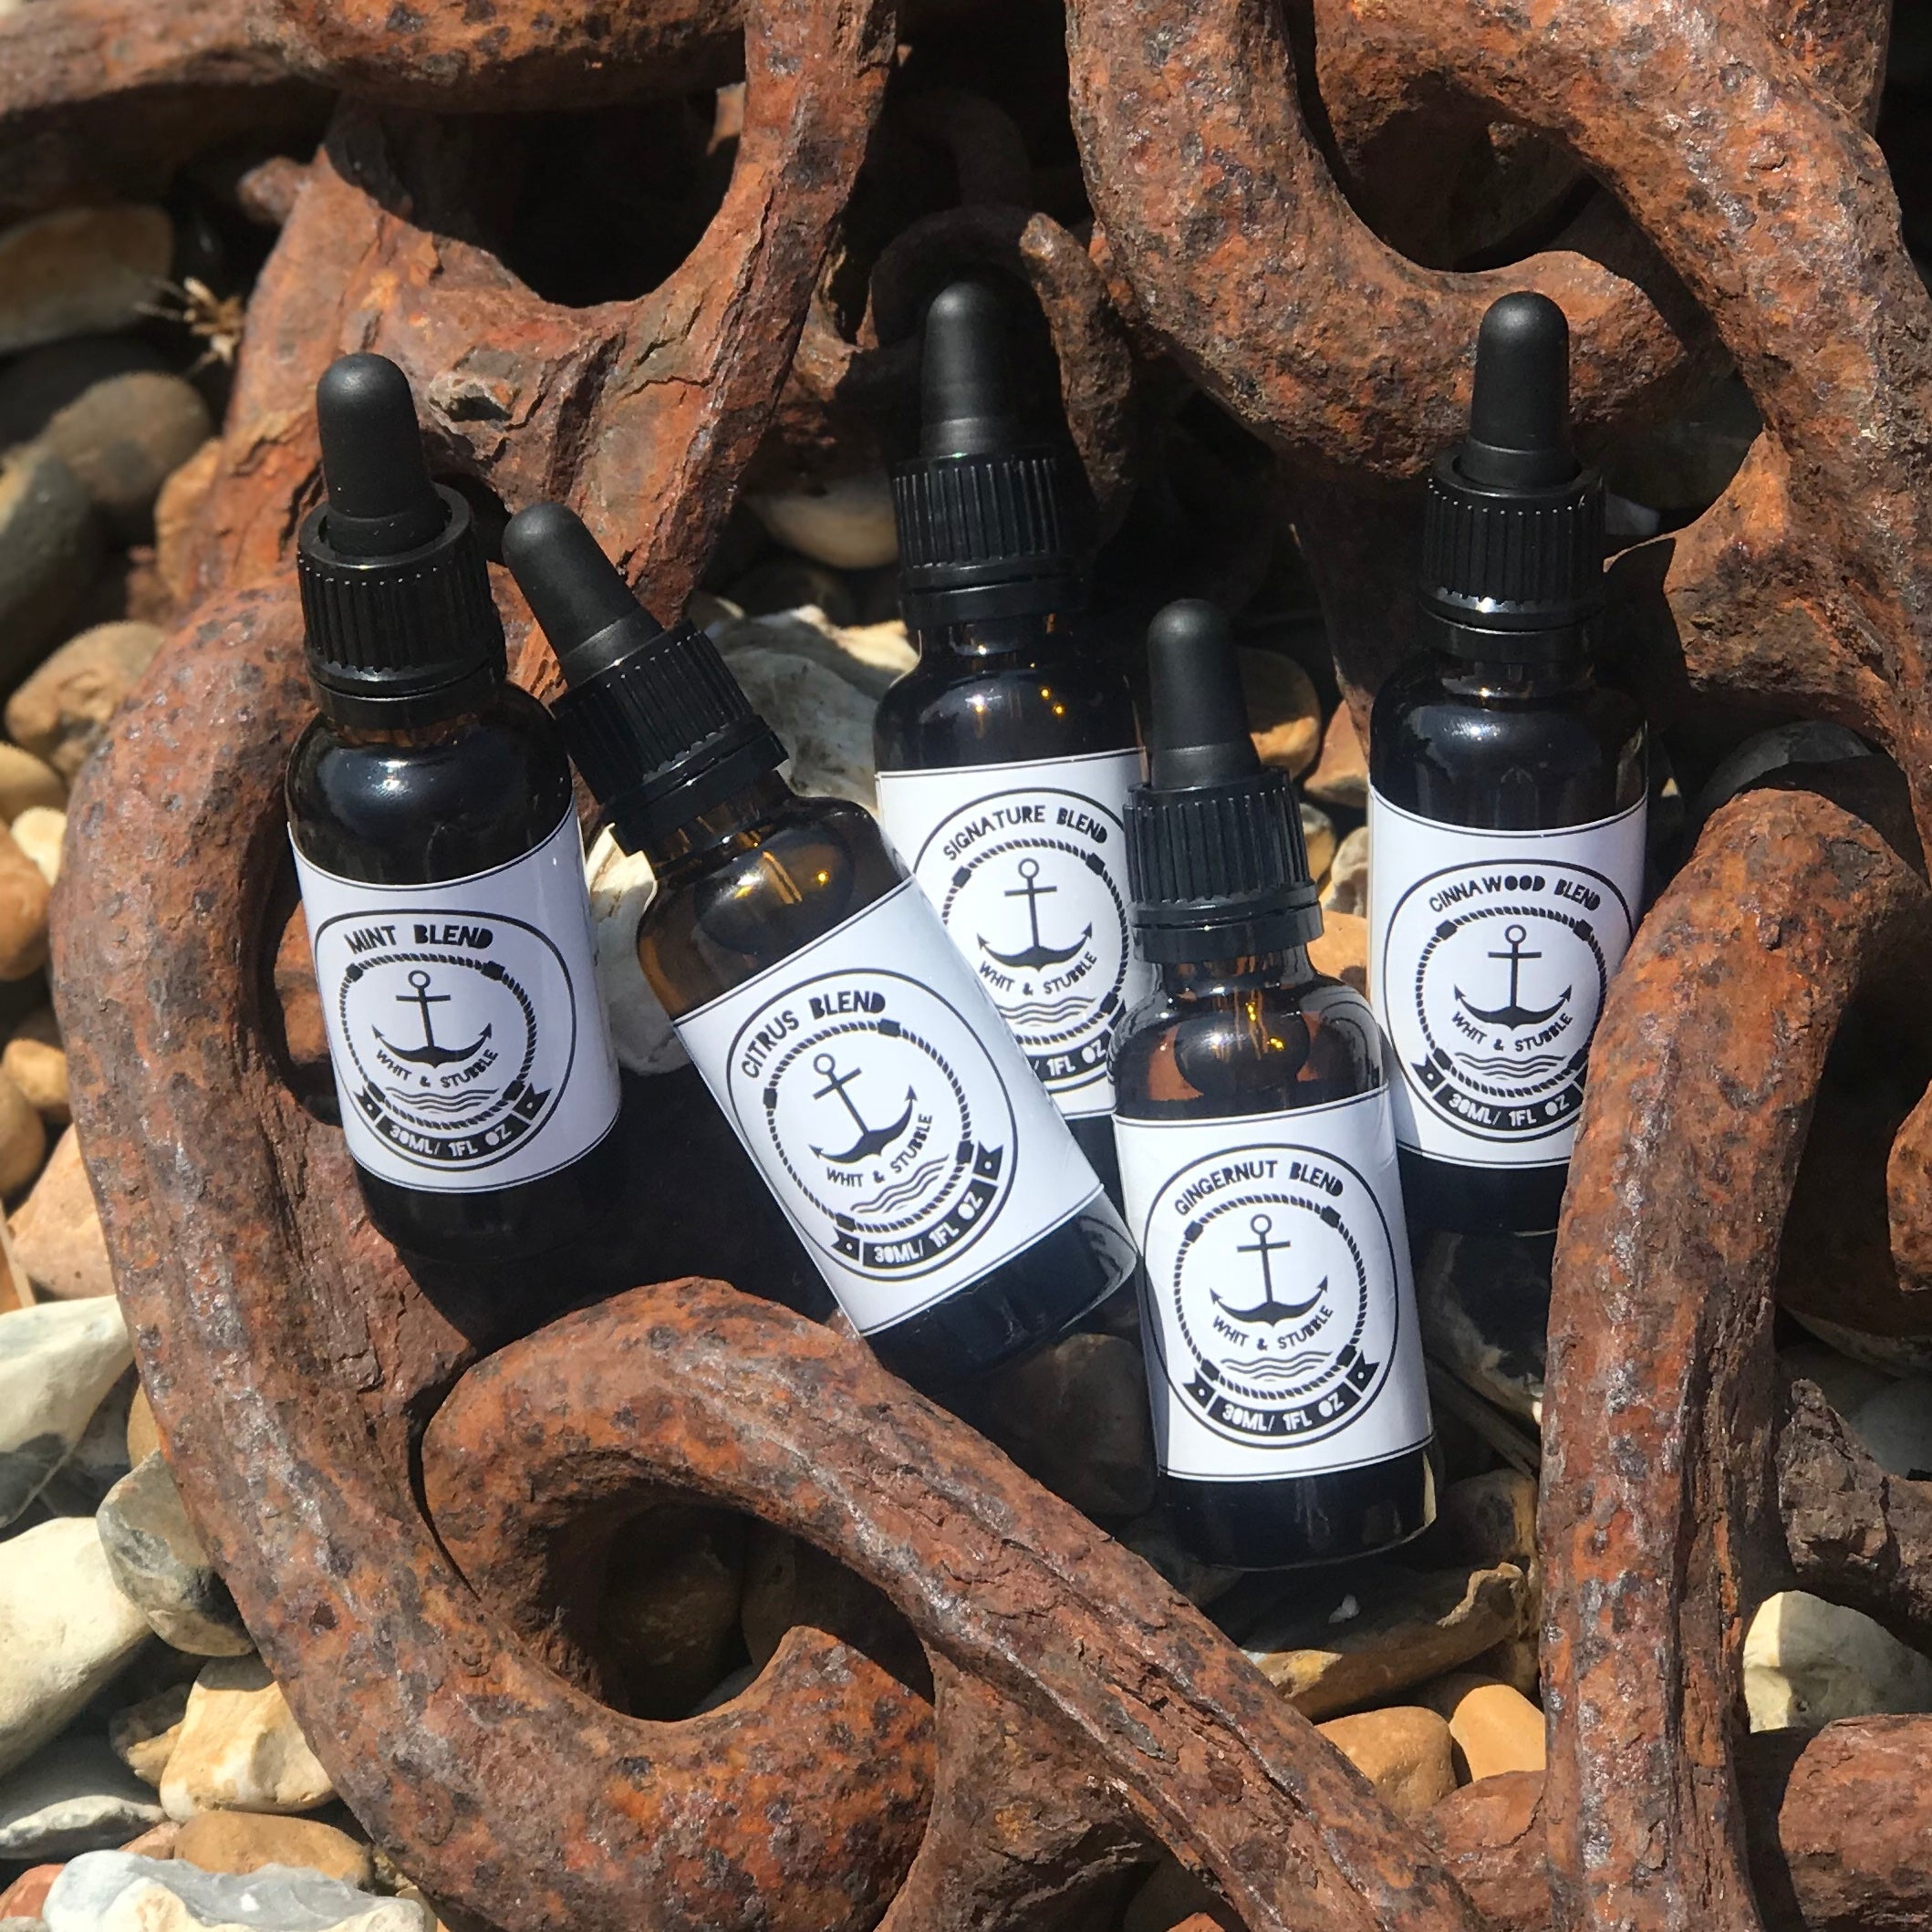 Mint Blend Beard Oil